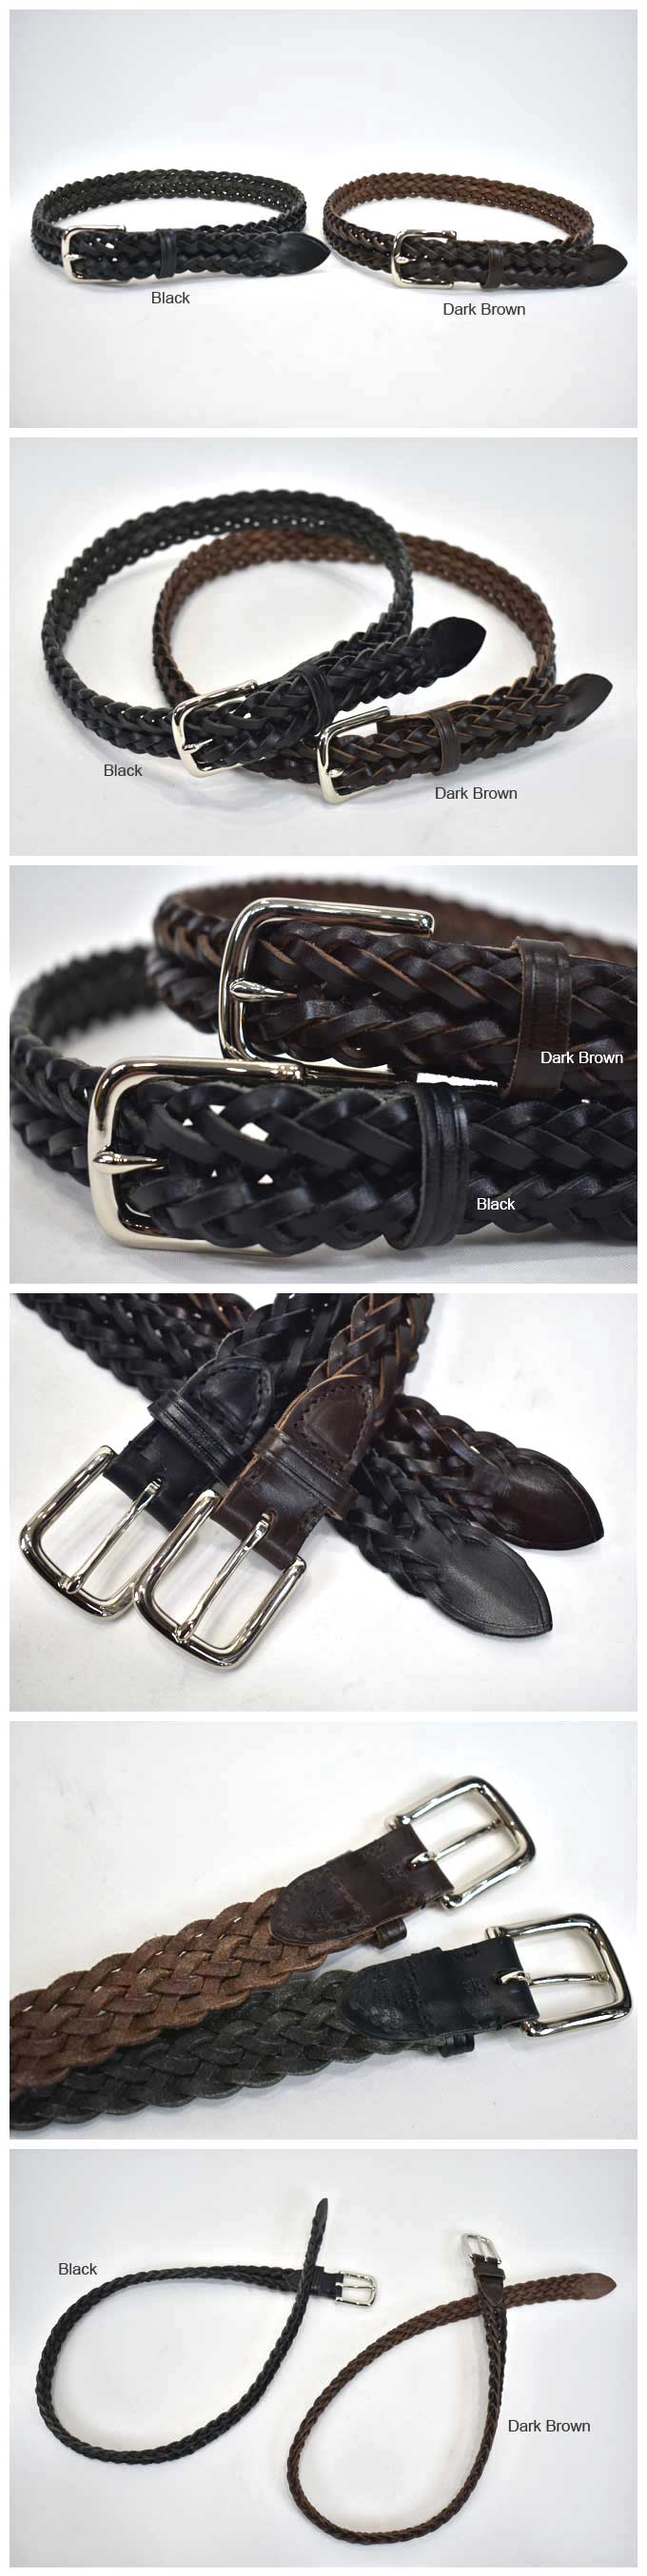 Whitehouse Cox  P-2274 Planted Belt (Cow Hide/28mm)